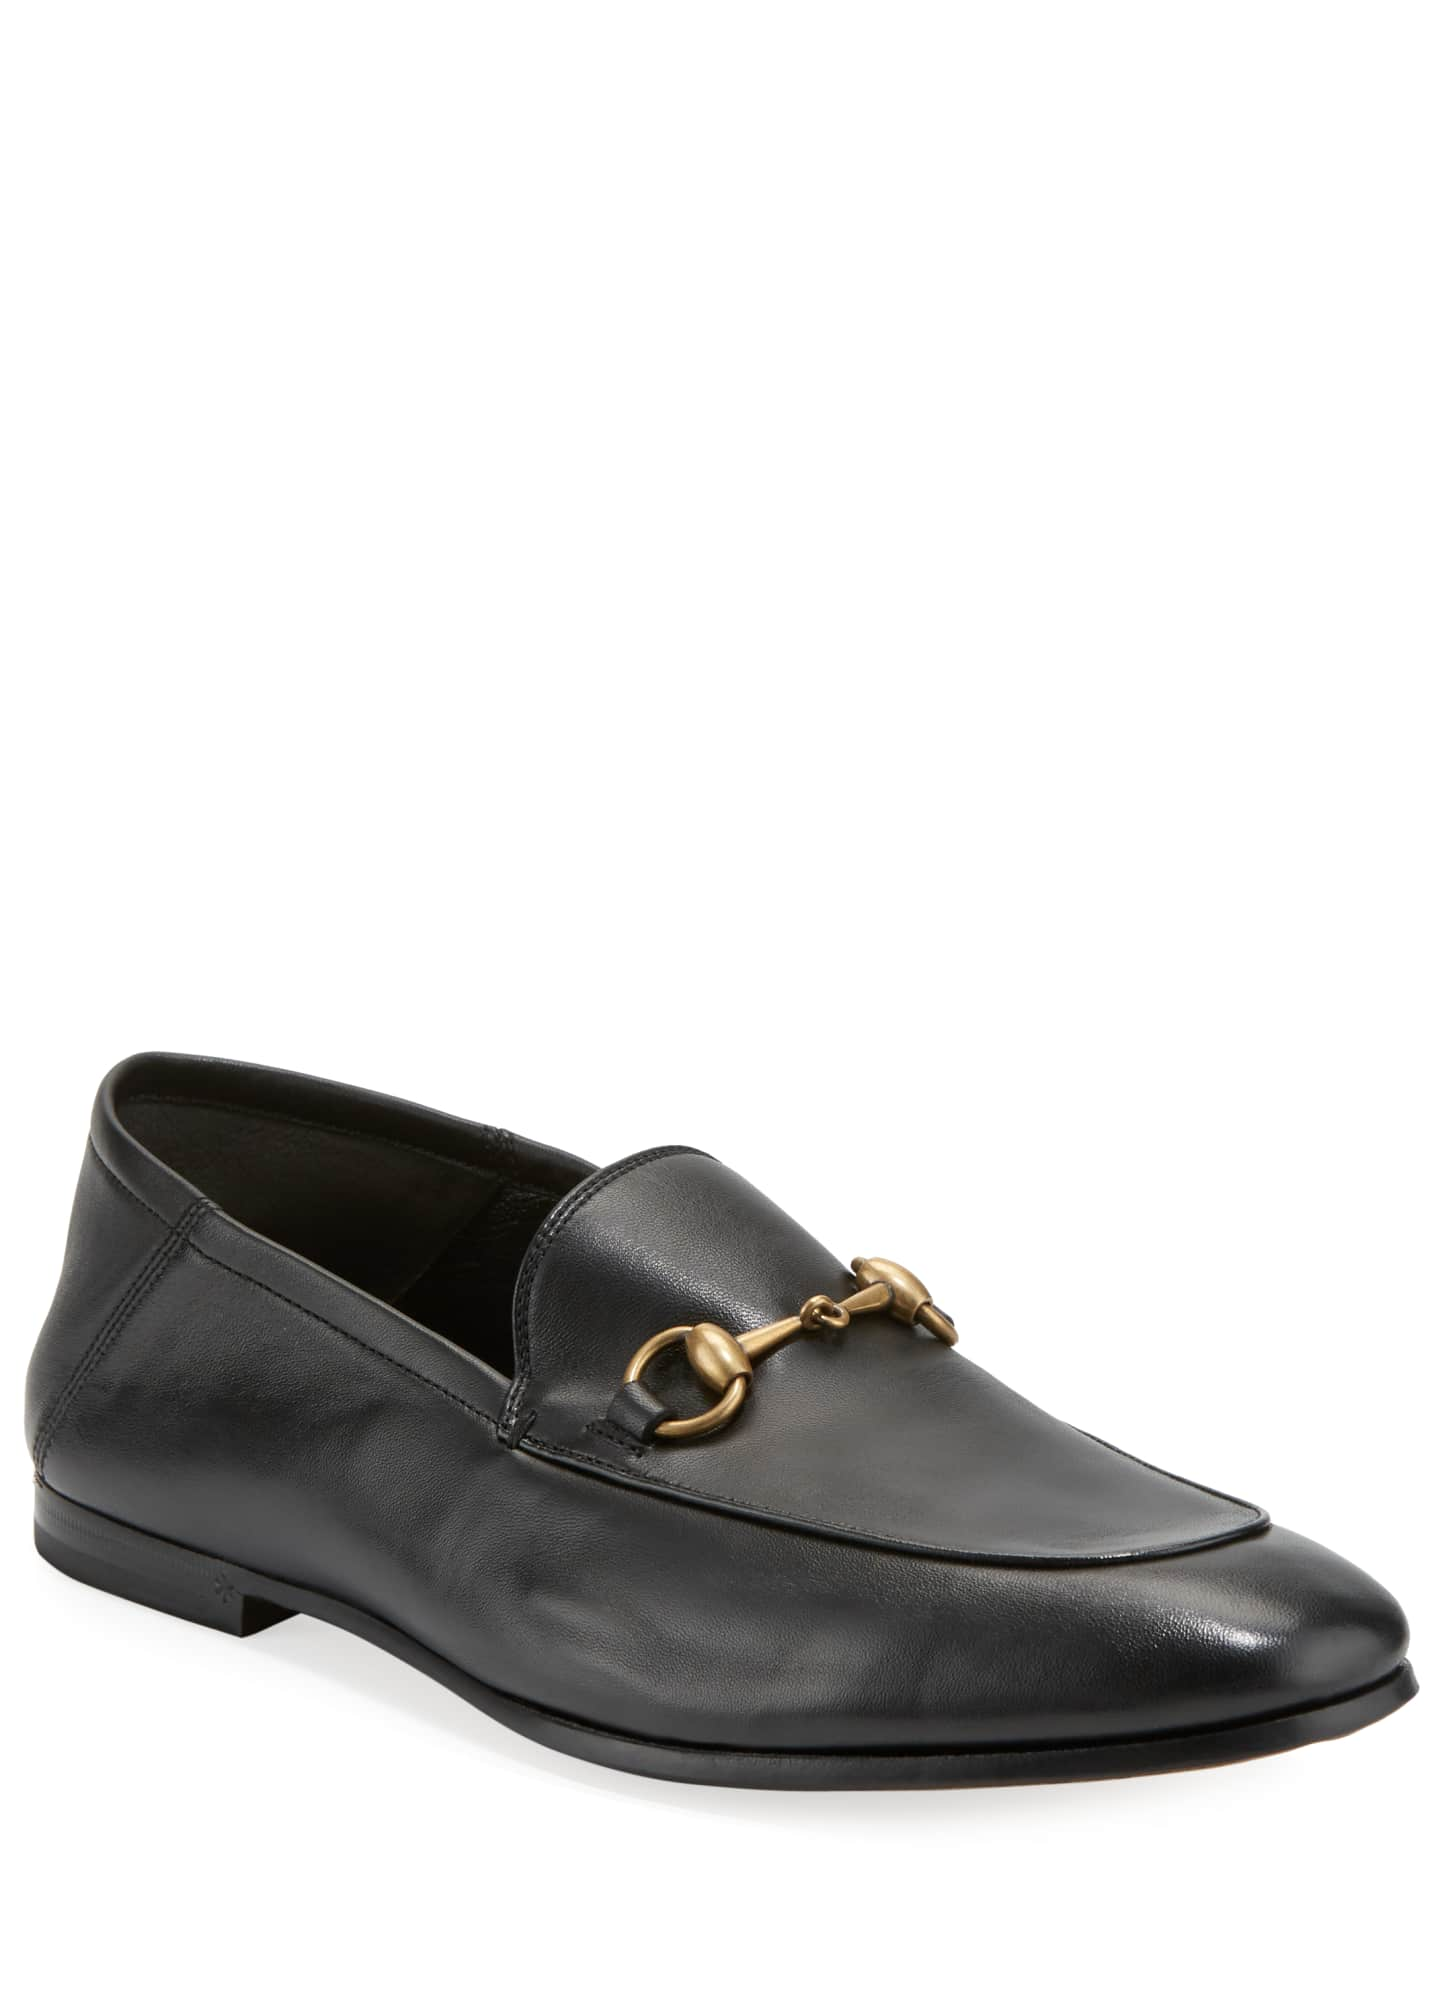 Image 1 of 4: Brixton Soft Leather Bit-Strap Loafer